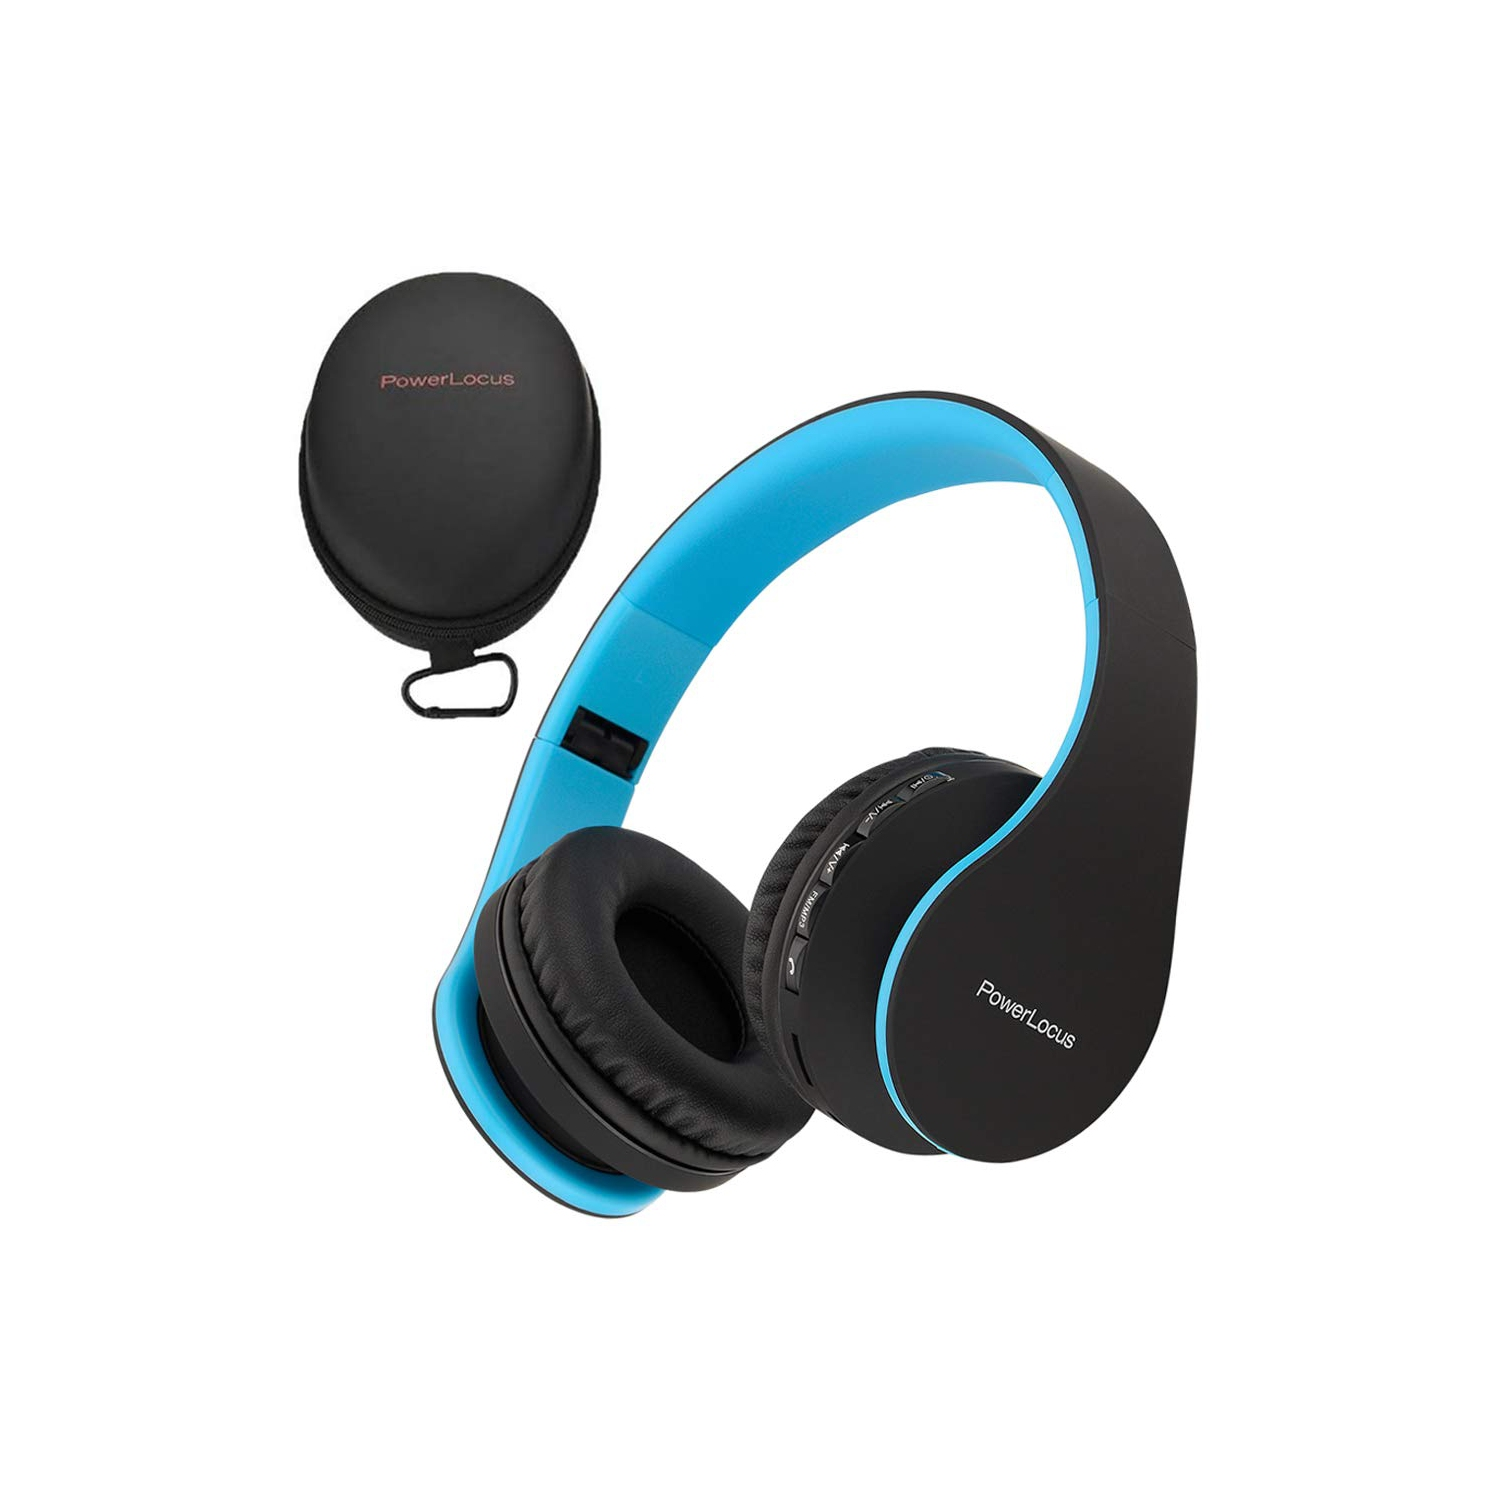 Powerlocus Wireless Bluetooth Over Ear Stereo Foldable Headphones Wired Headsets Noise Cancelling With Built In Microphone Fo Best Buy Canada